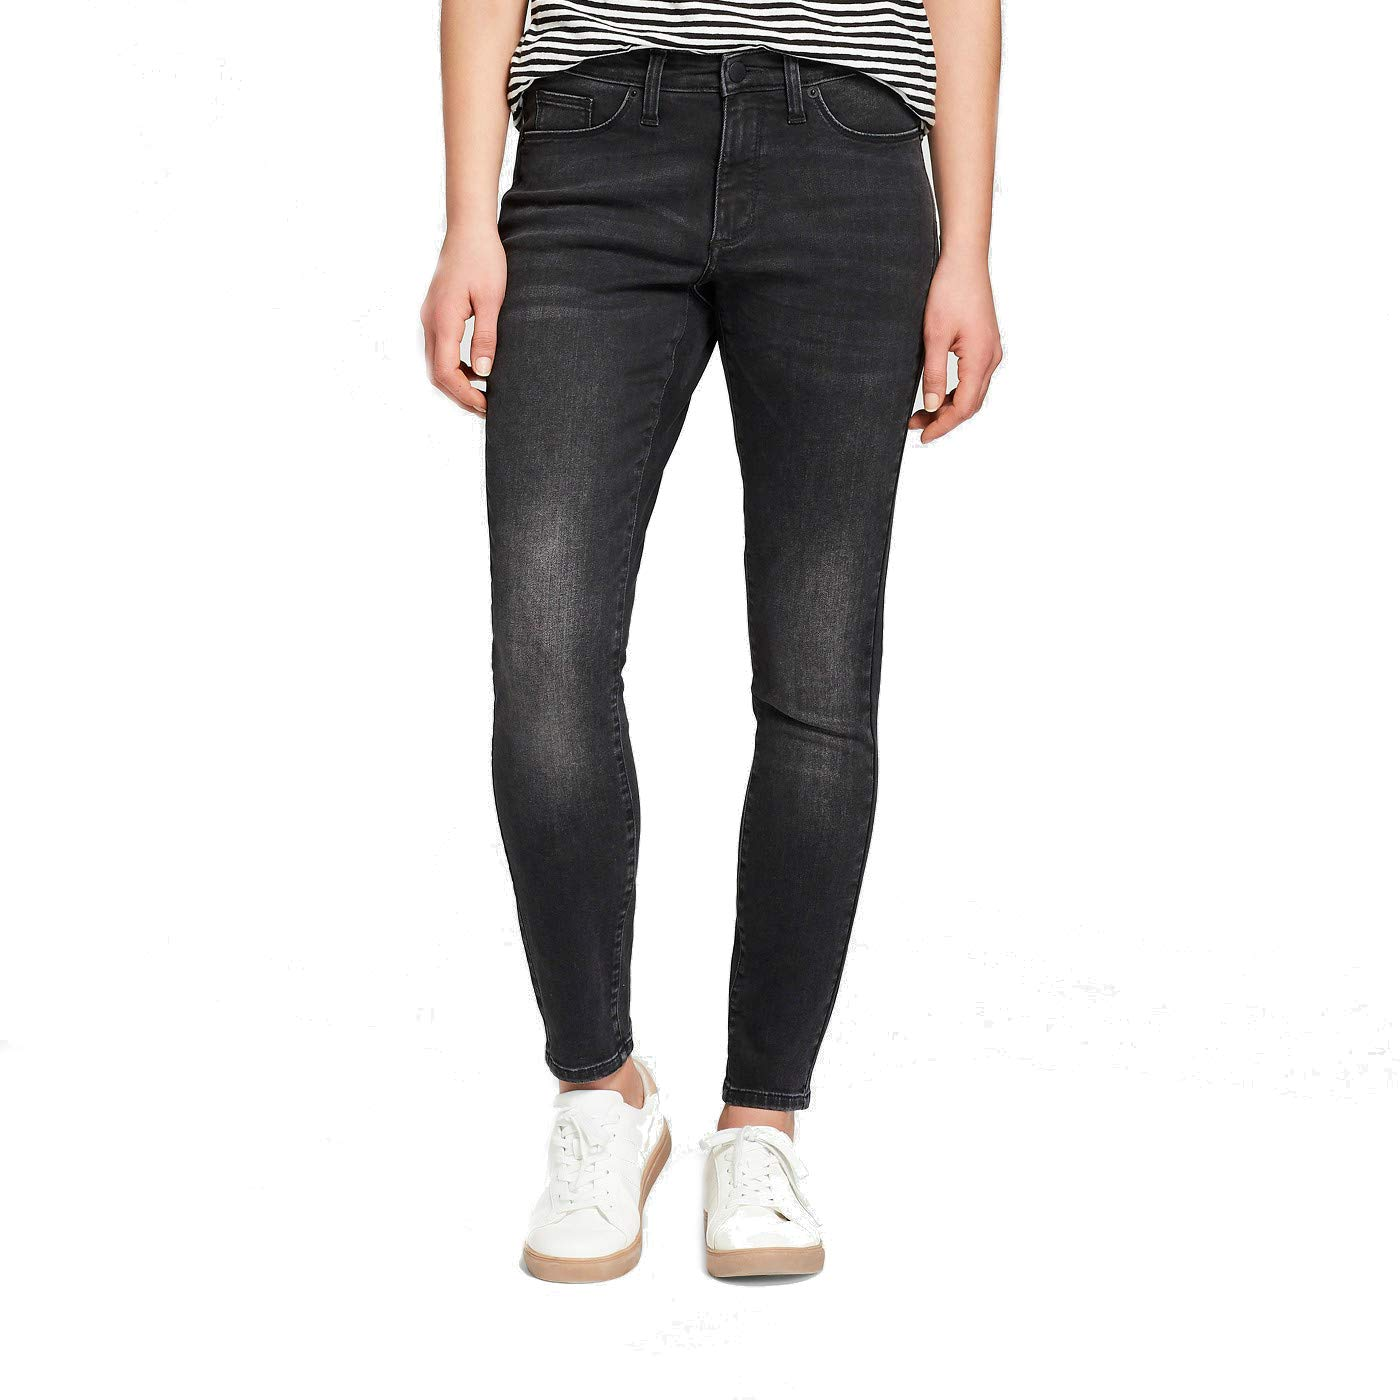 49909e15a428 Universal Thread Women's High-Rise Skinny Jeans Black at Amazon Women's  Jeans store